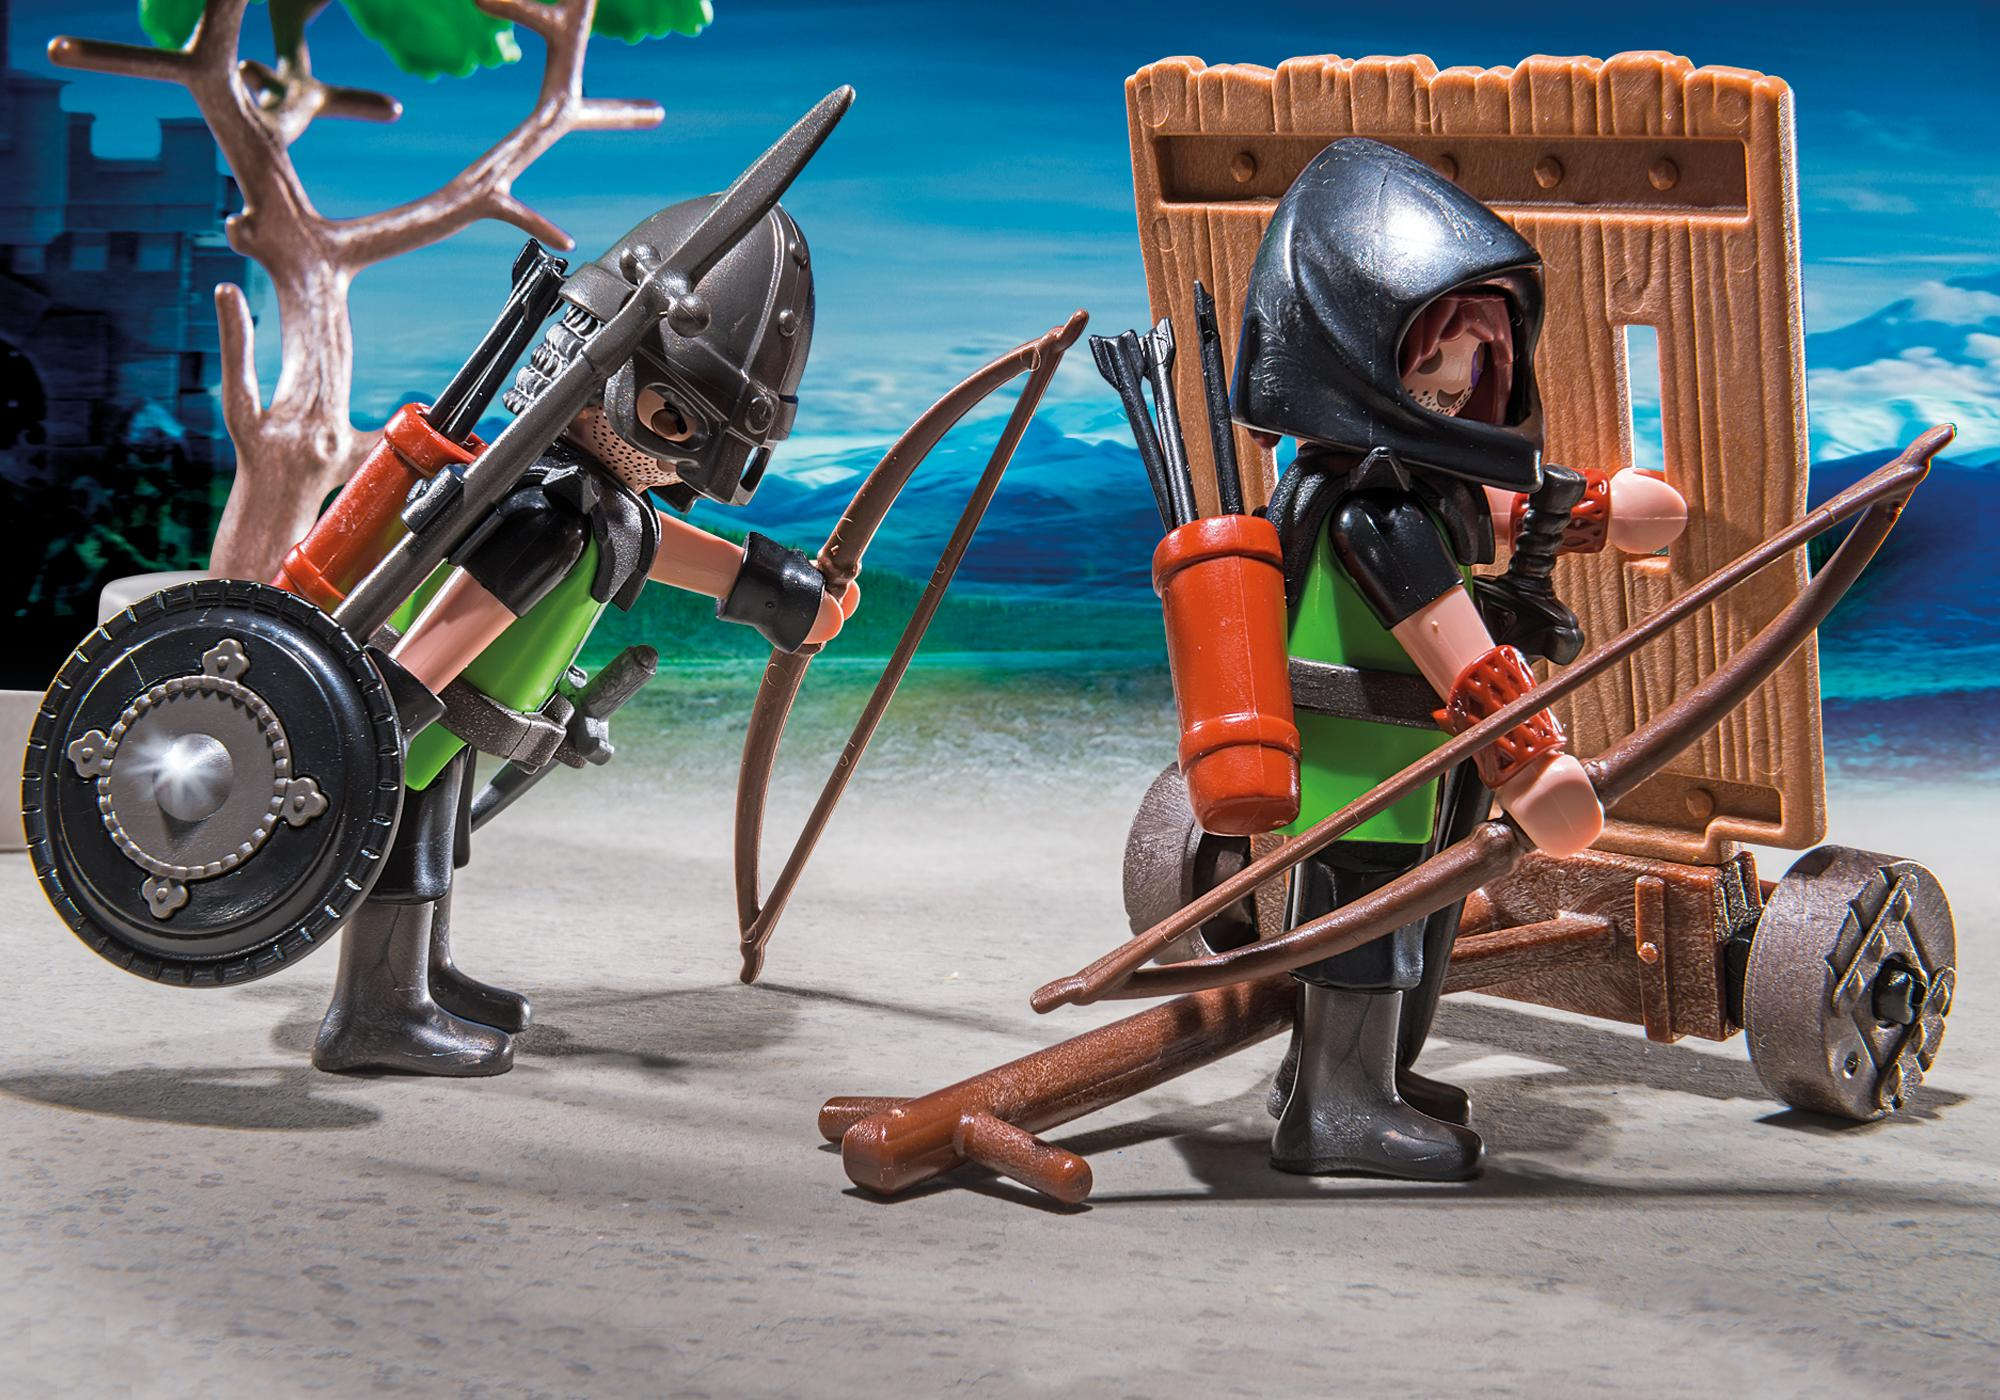 http://media.playmobil.com/i/playmobil/6041_product_extra1